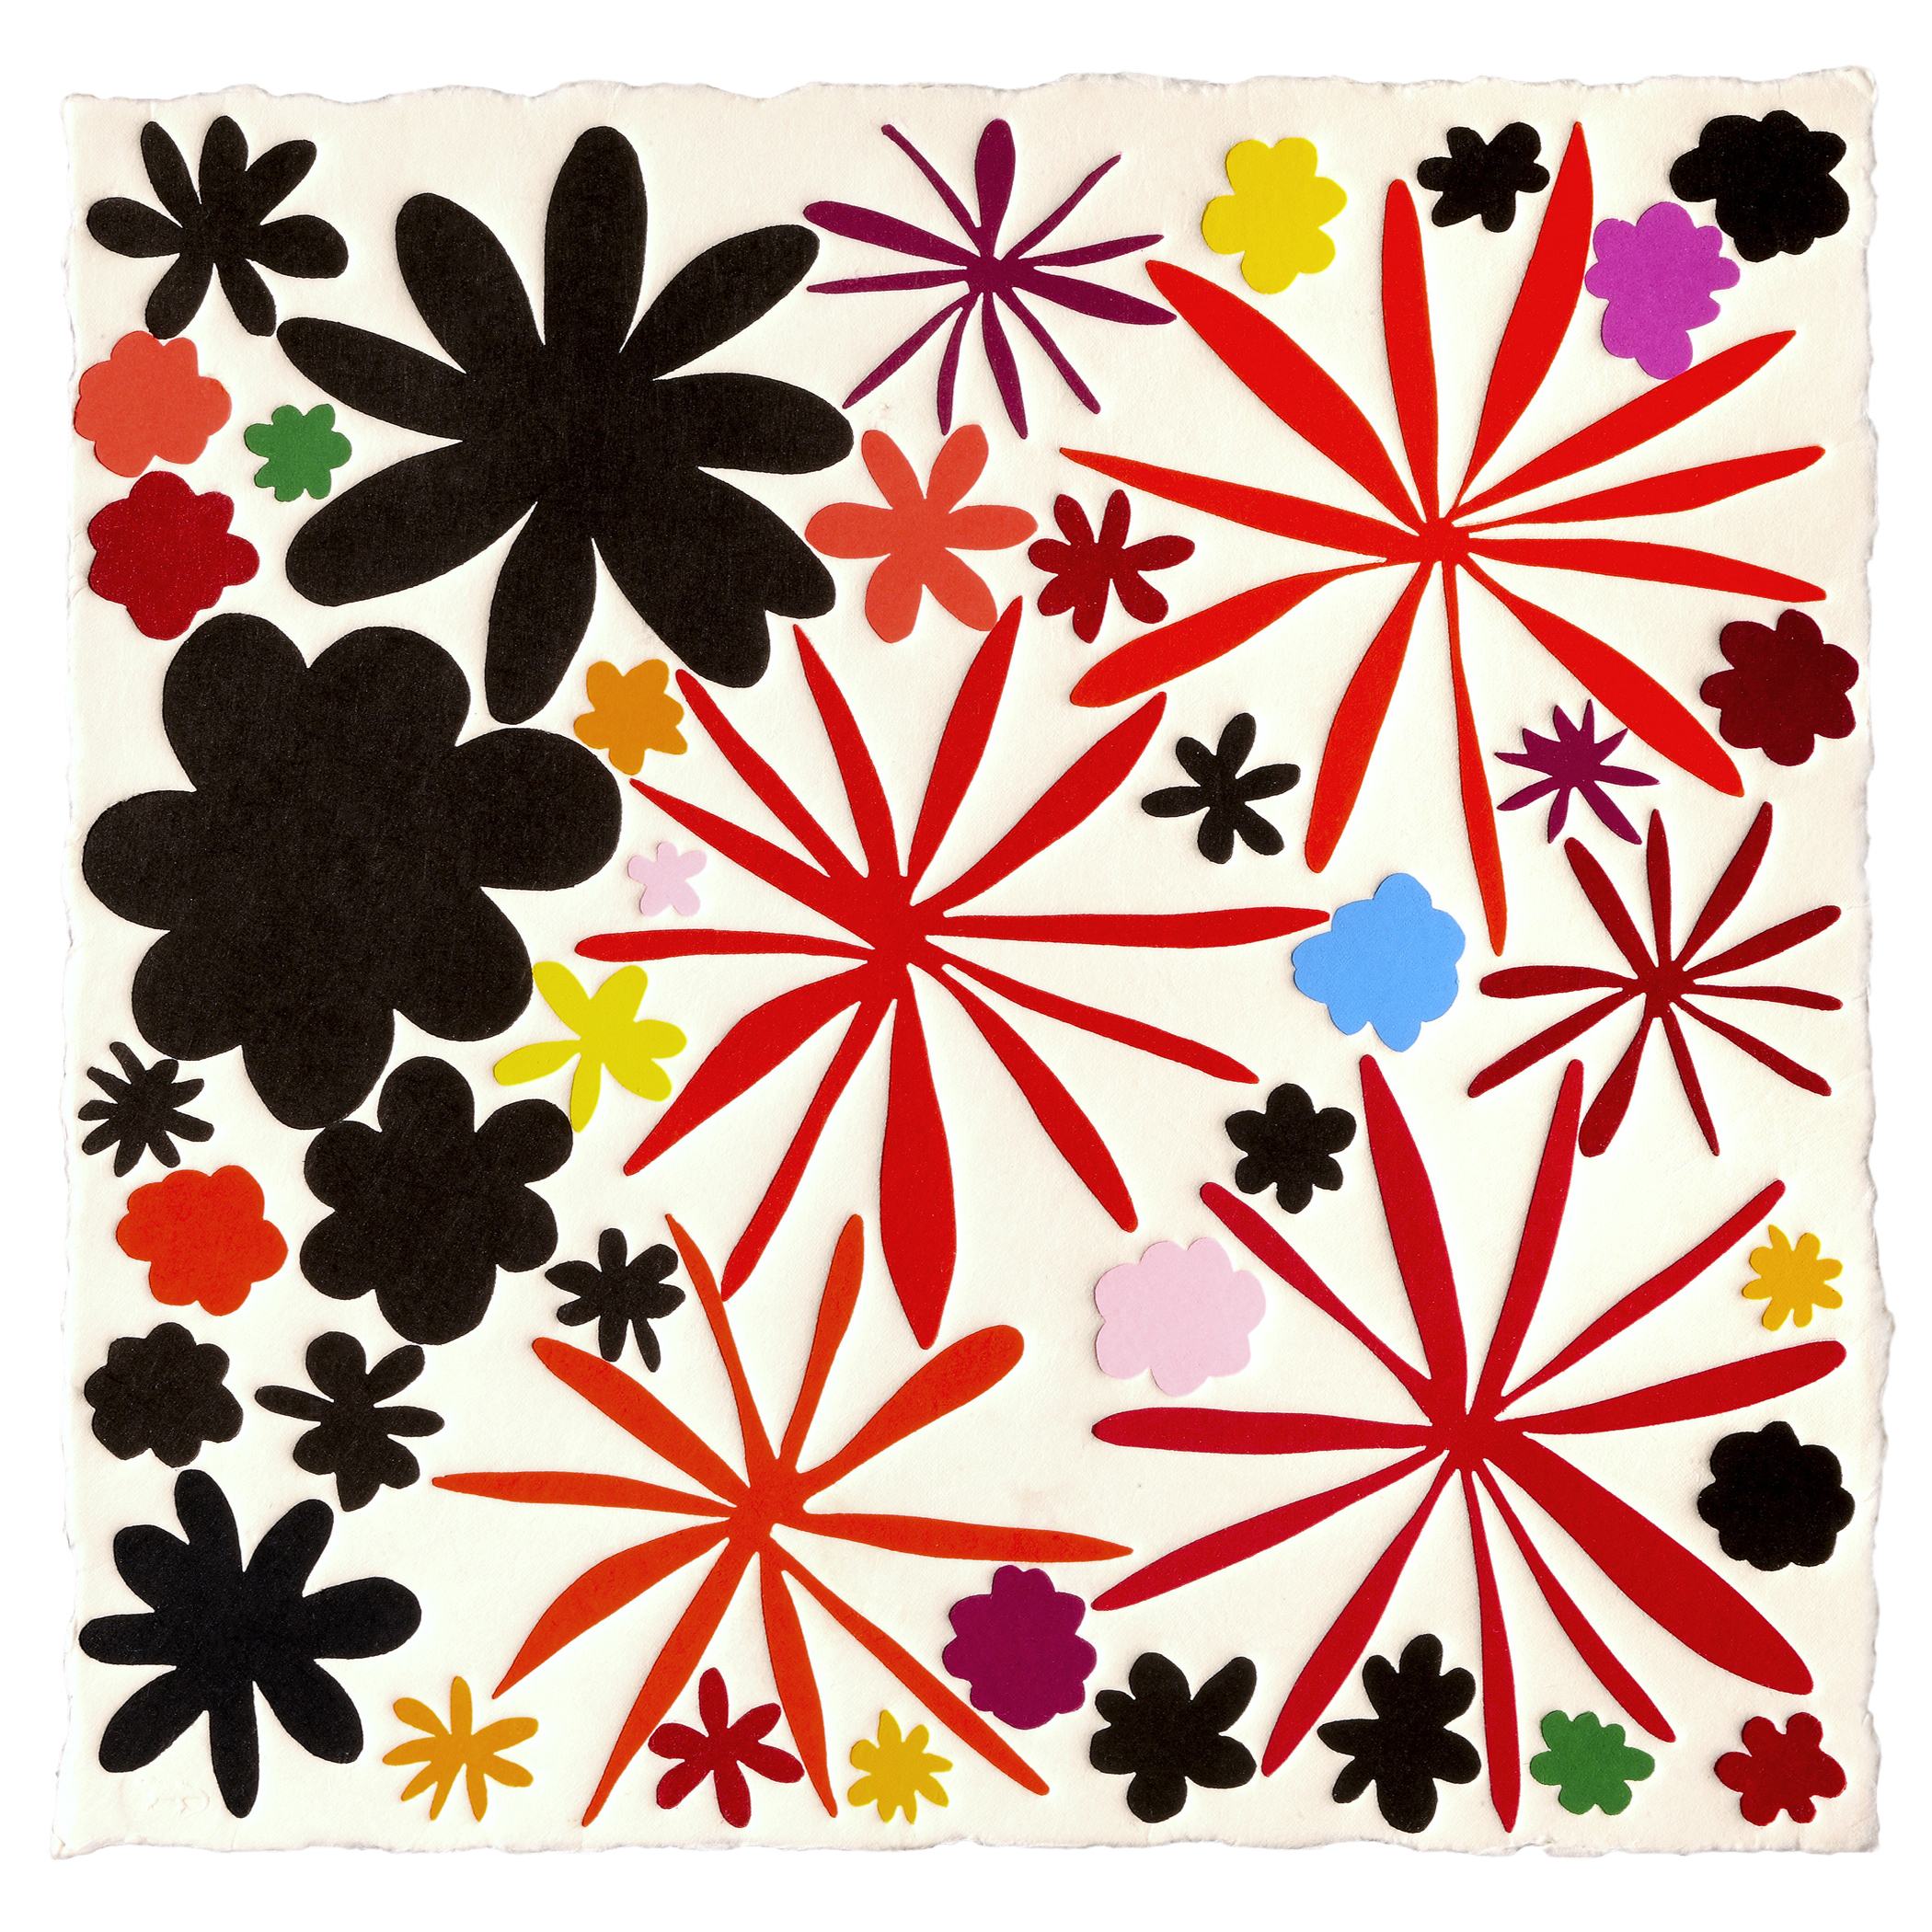 Polly Apfelbaum, Night Flowering (2009),Multicolor woodblock print on Kozo (Japanese triple-thick handmade paper),16 x 16 inches